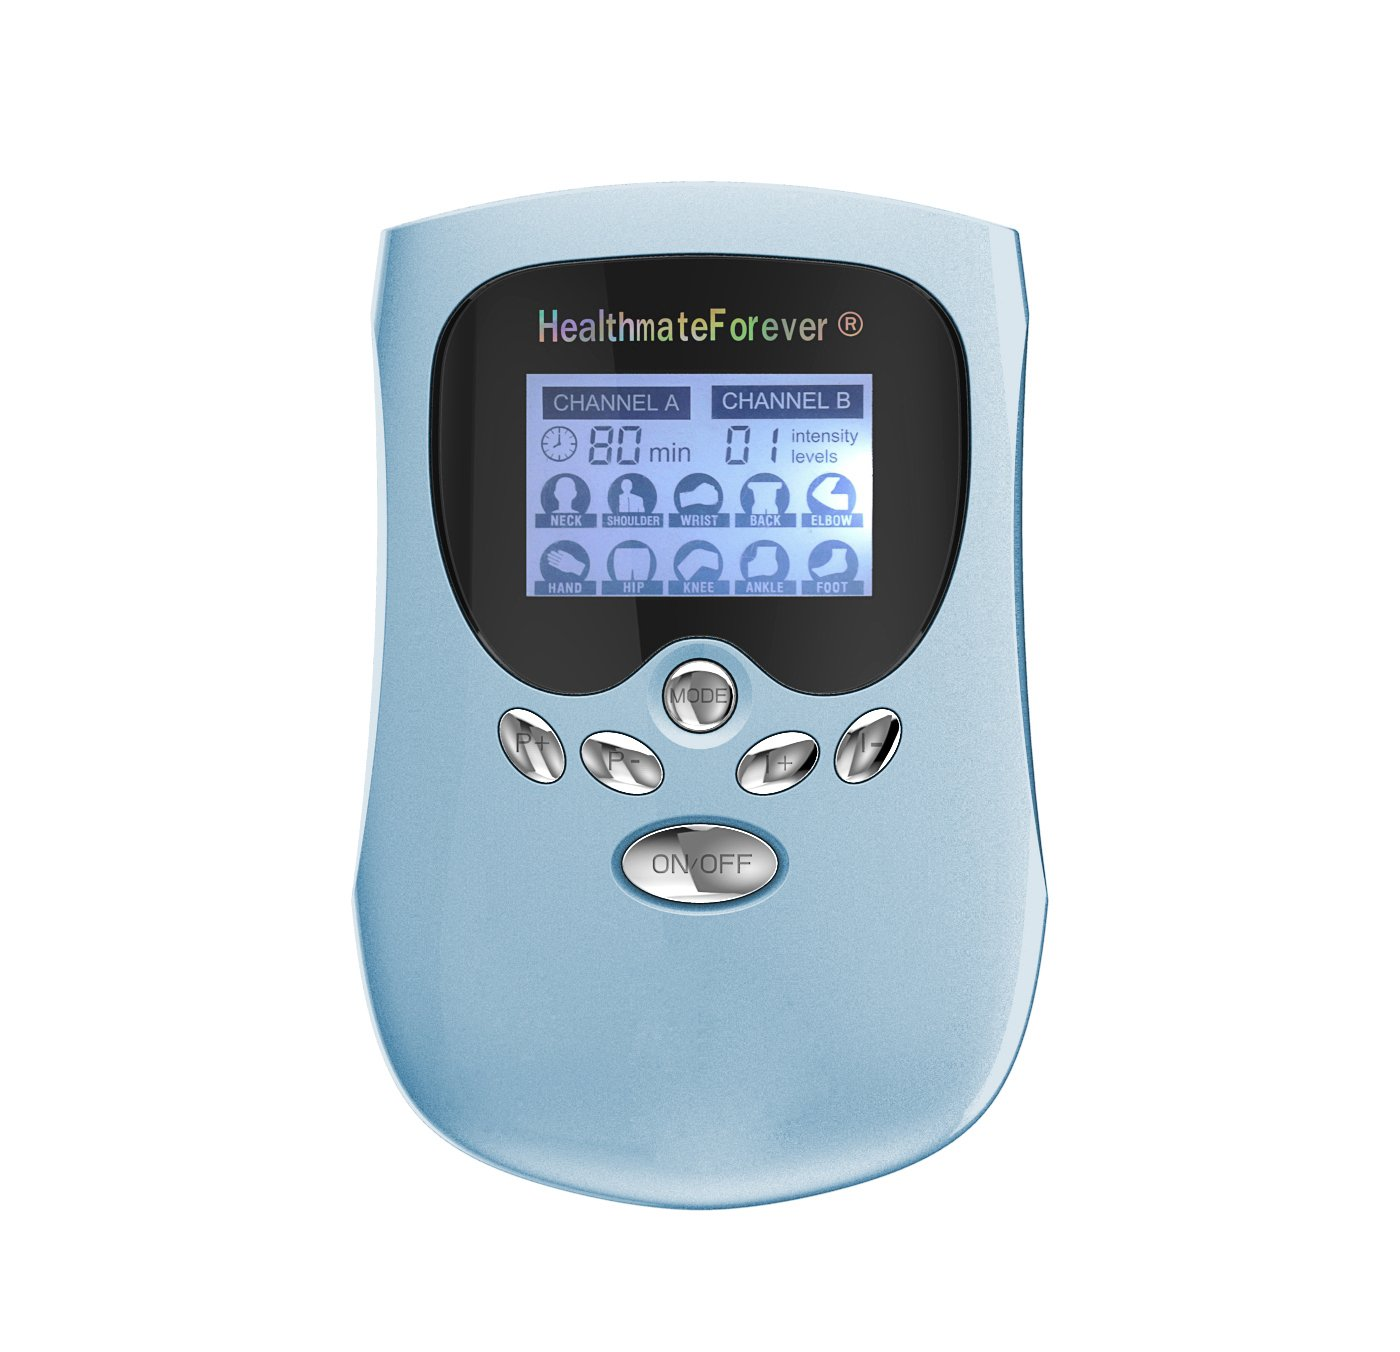 PM10AB HealthmateForever TENS Unit Electrical Muscle Stimulator Blue